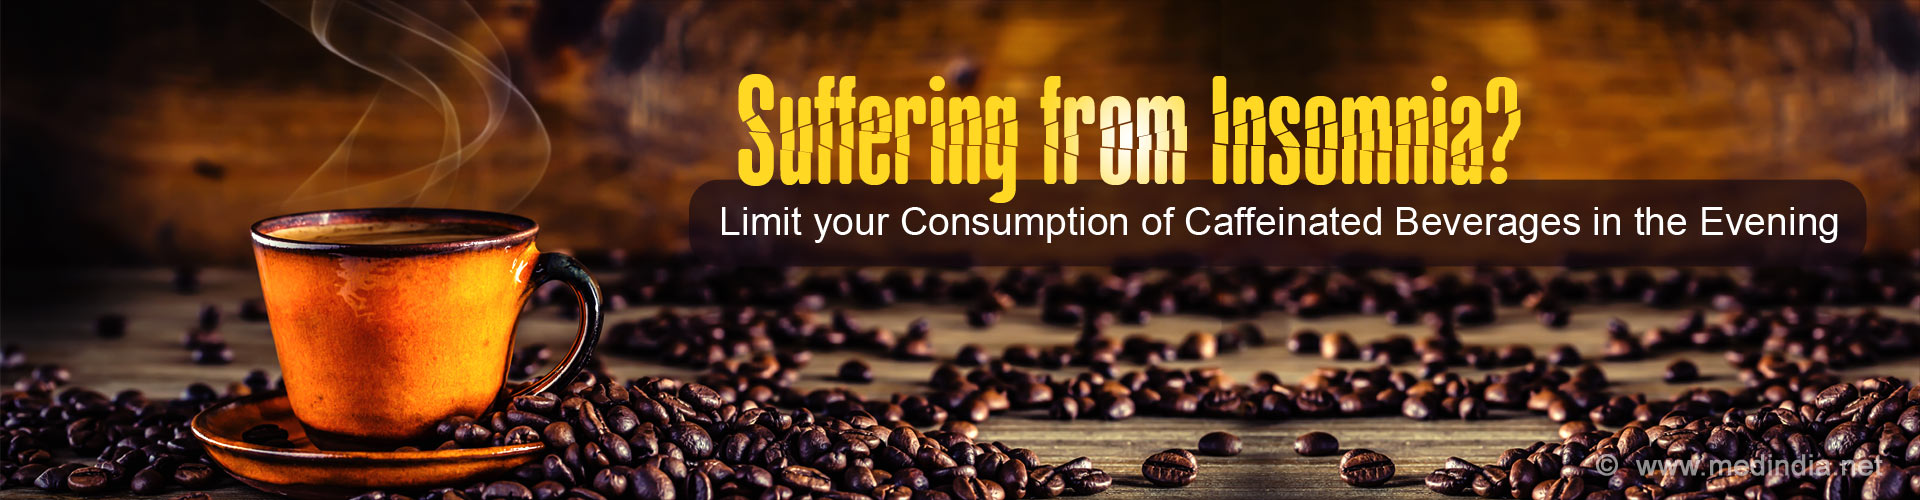 Suffering from Insomnia? Limit your Consumption of Caffeinated Beverages in the Evening